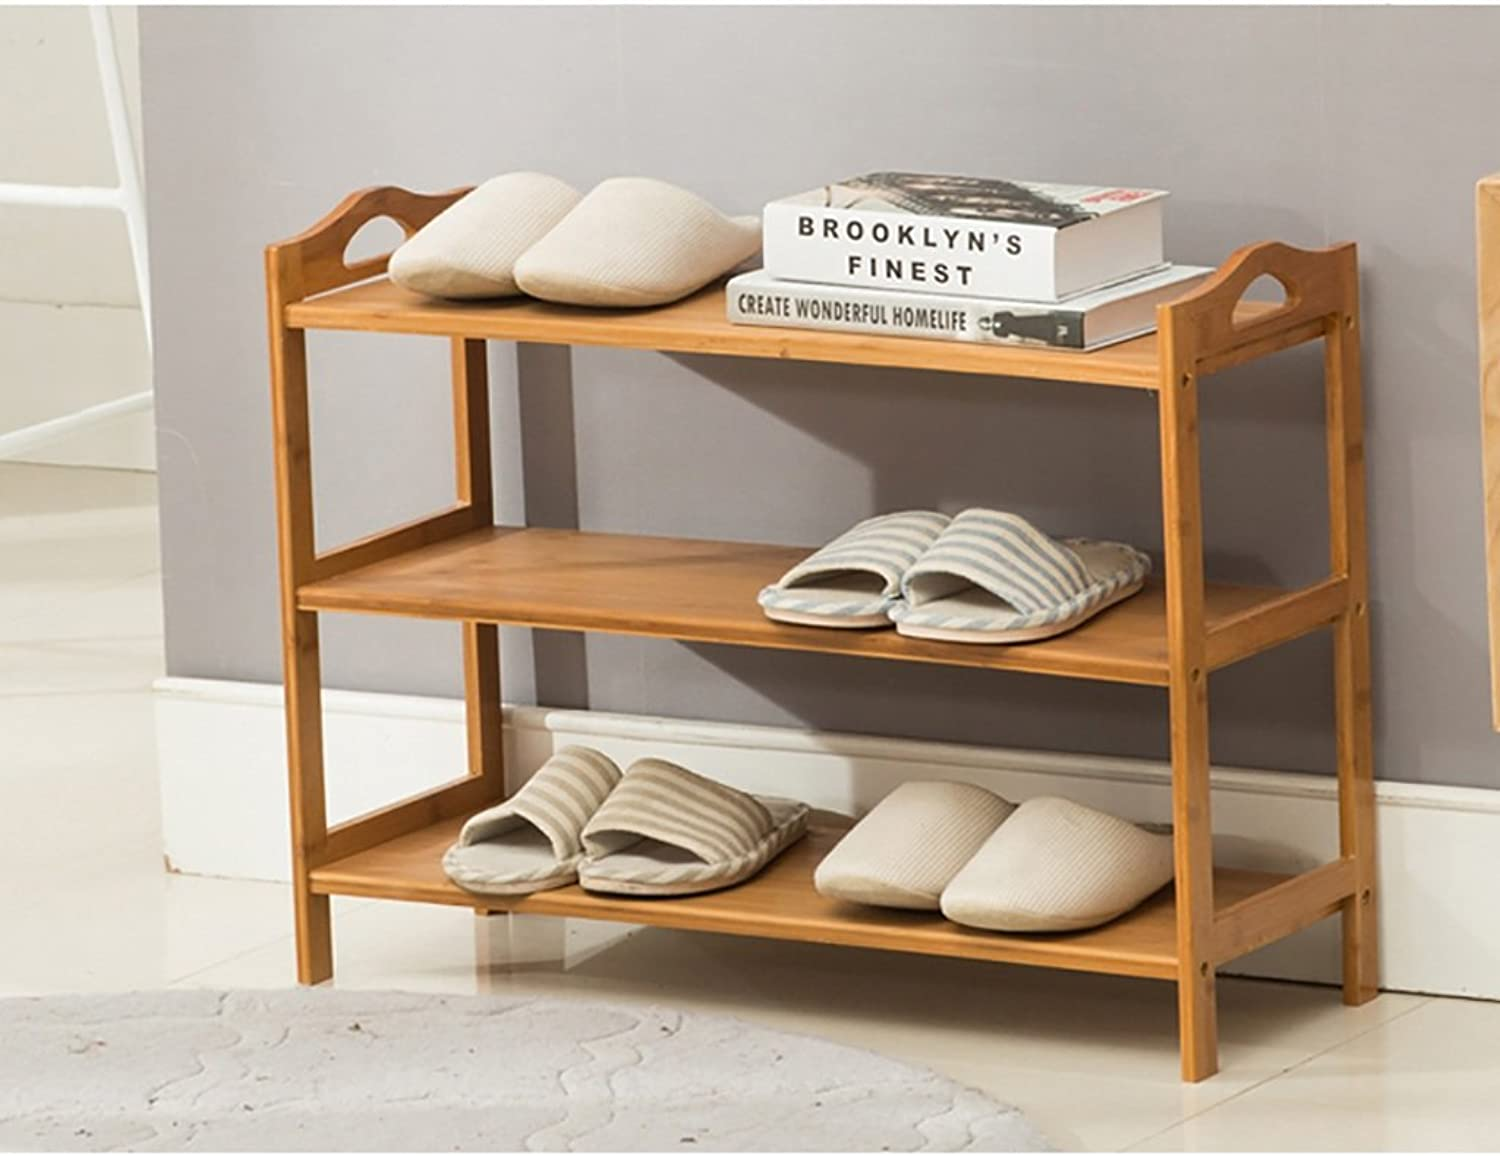 shoes Bench Organizing Rack Bamboo shoes Rack Bench 3 Tier shoes Stand Rack Storage Organiser Holder 502653cm